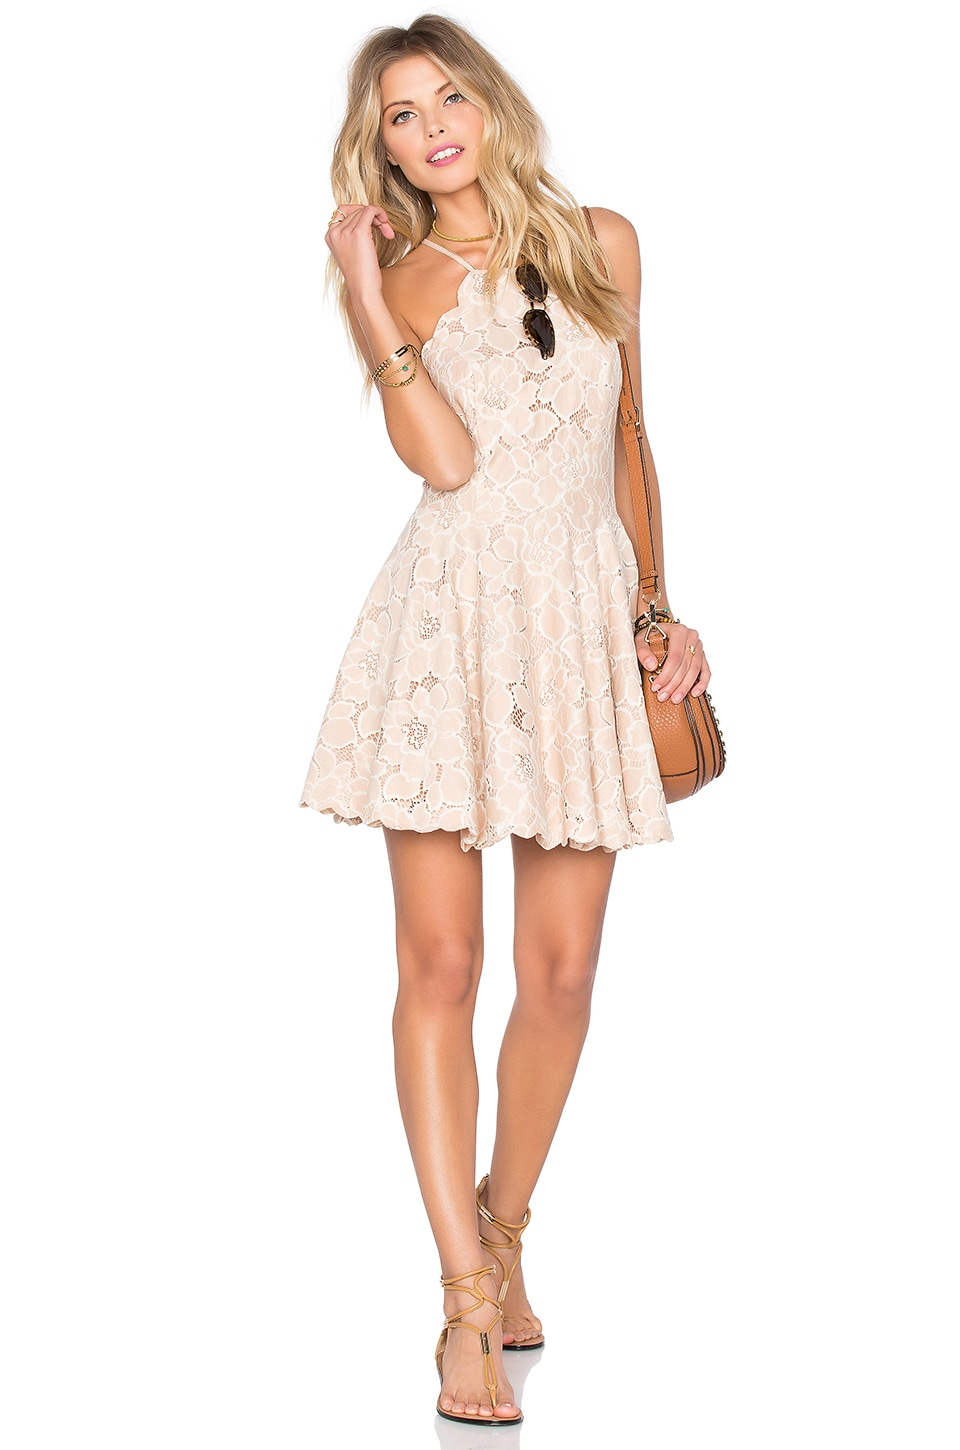 Tularosa Cyrus Dress in Pale Blush